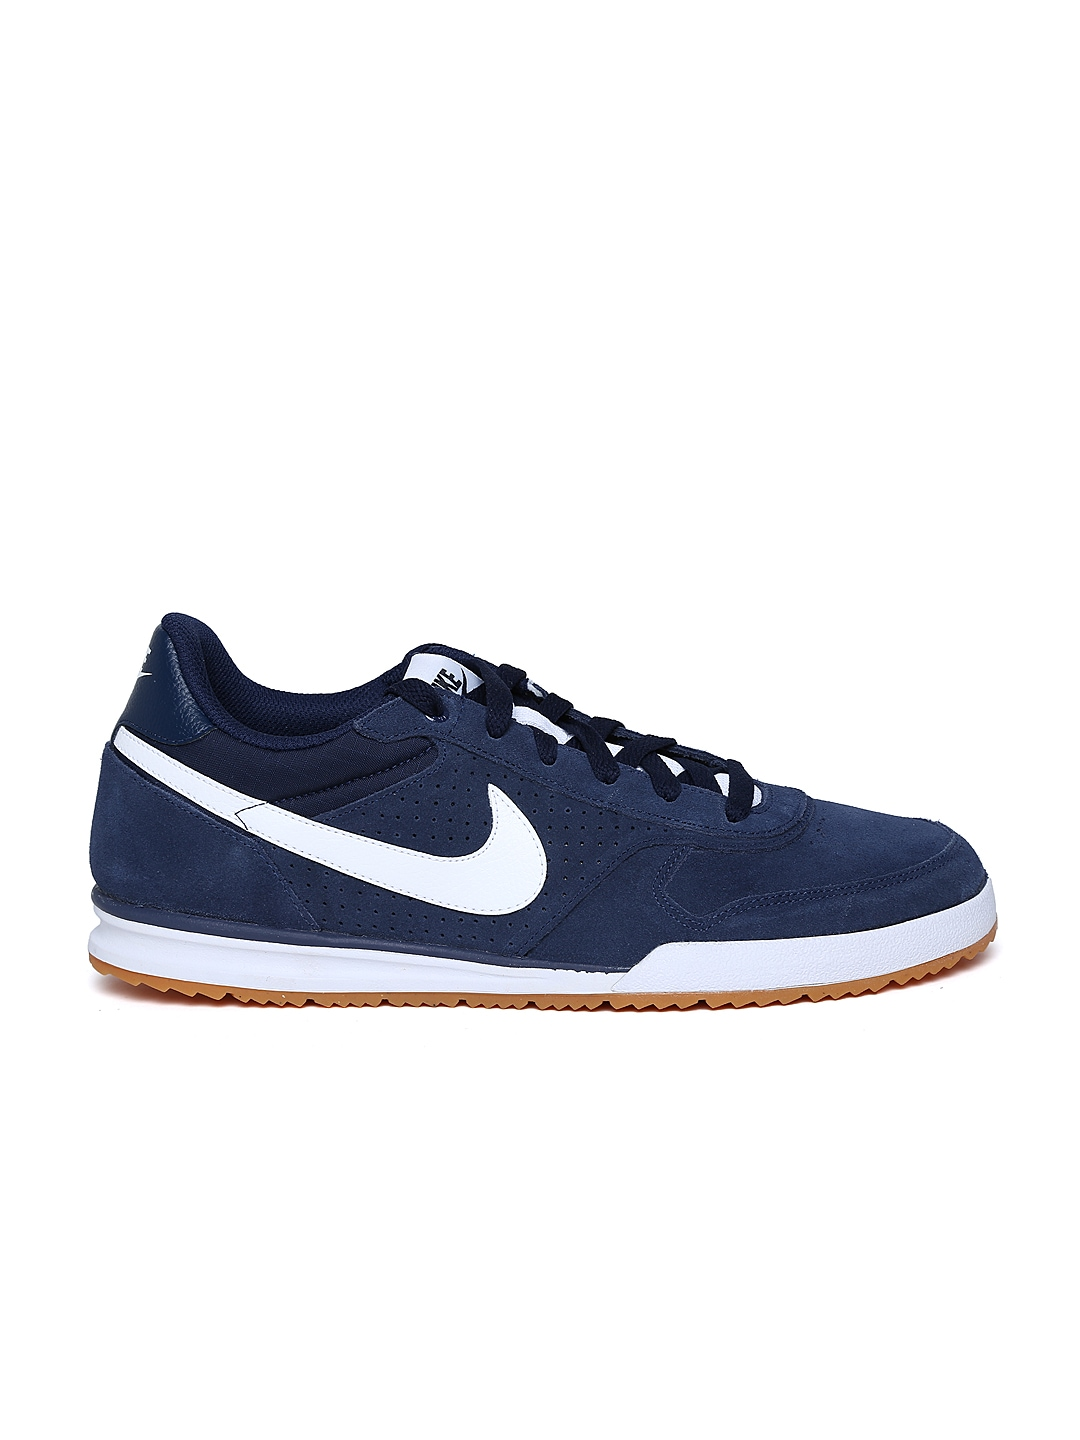 myntra nike navy field trainer suede casual shoes